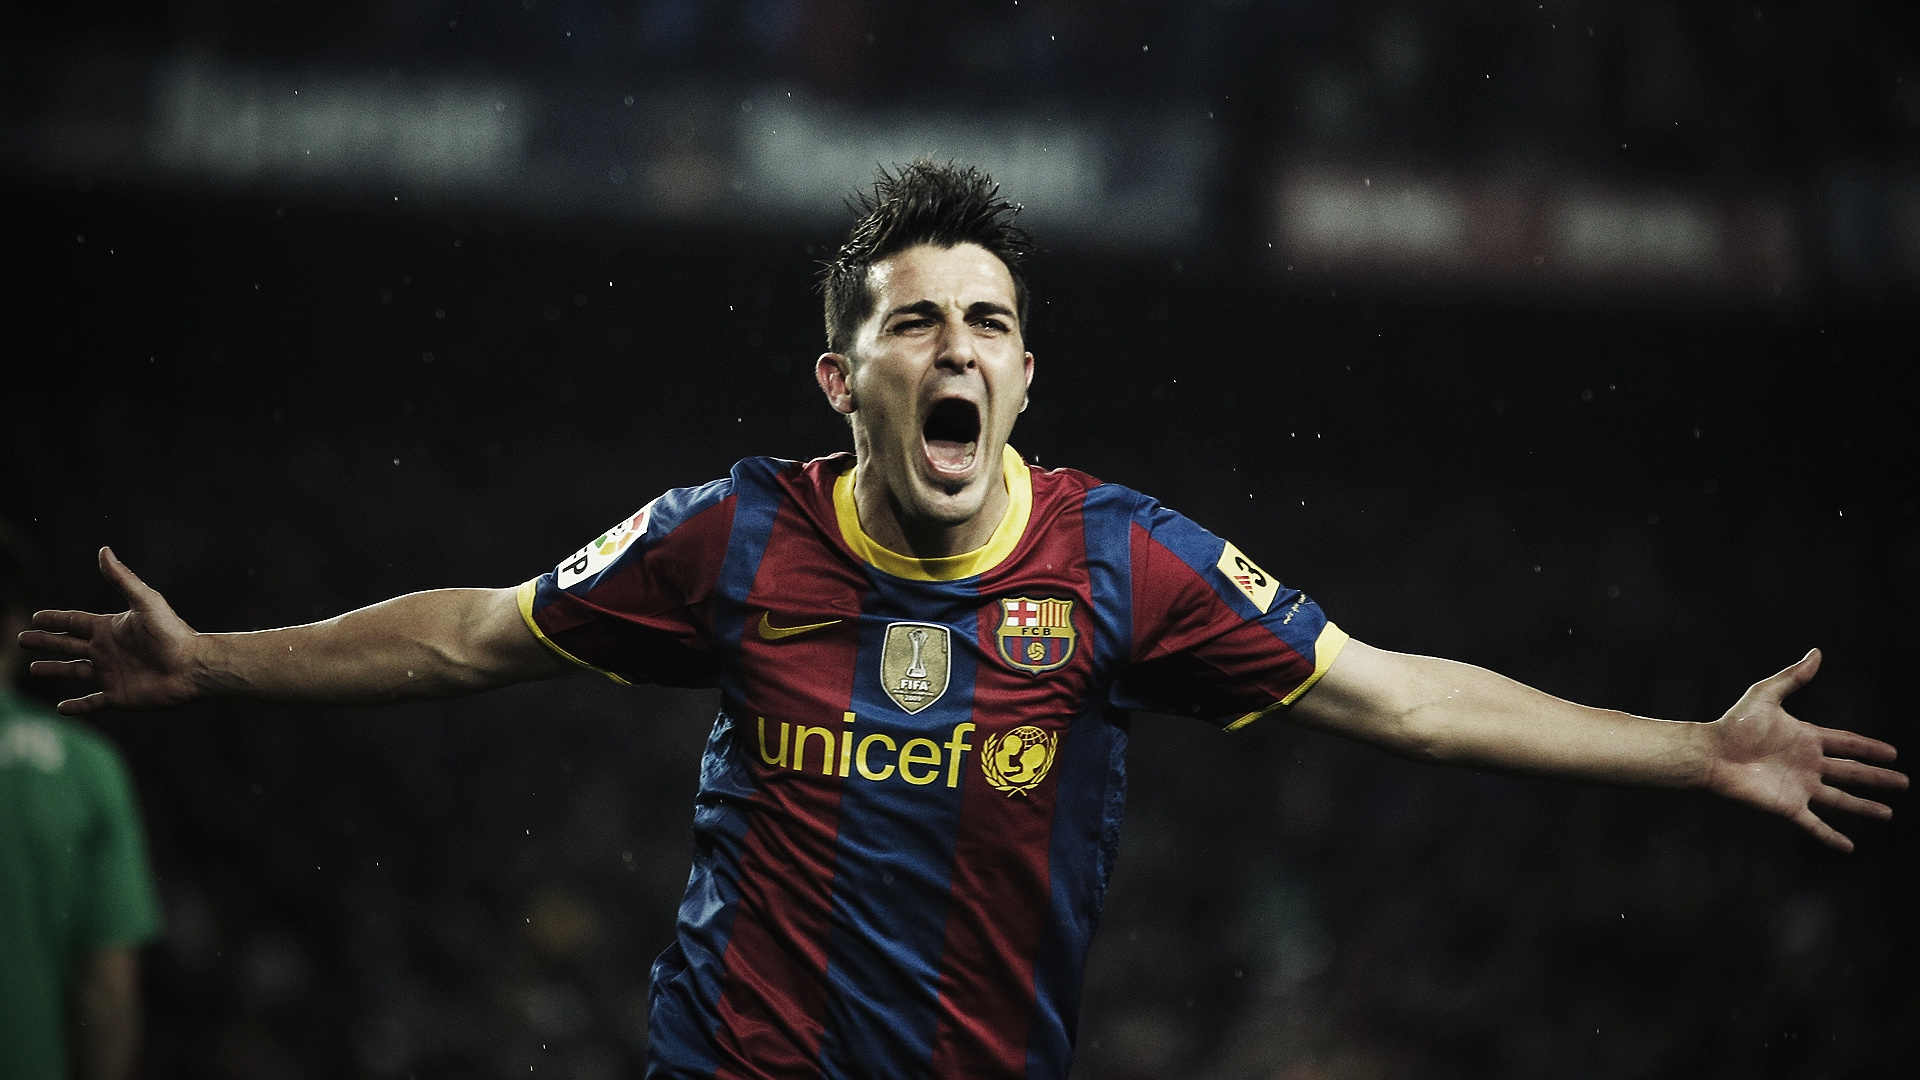 Shout Football Player Hands Wallpaper Hd Sports 4k Wallpapers Images Photos And Background